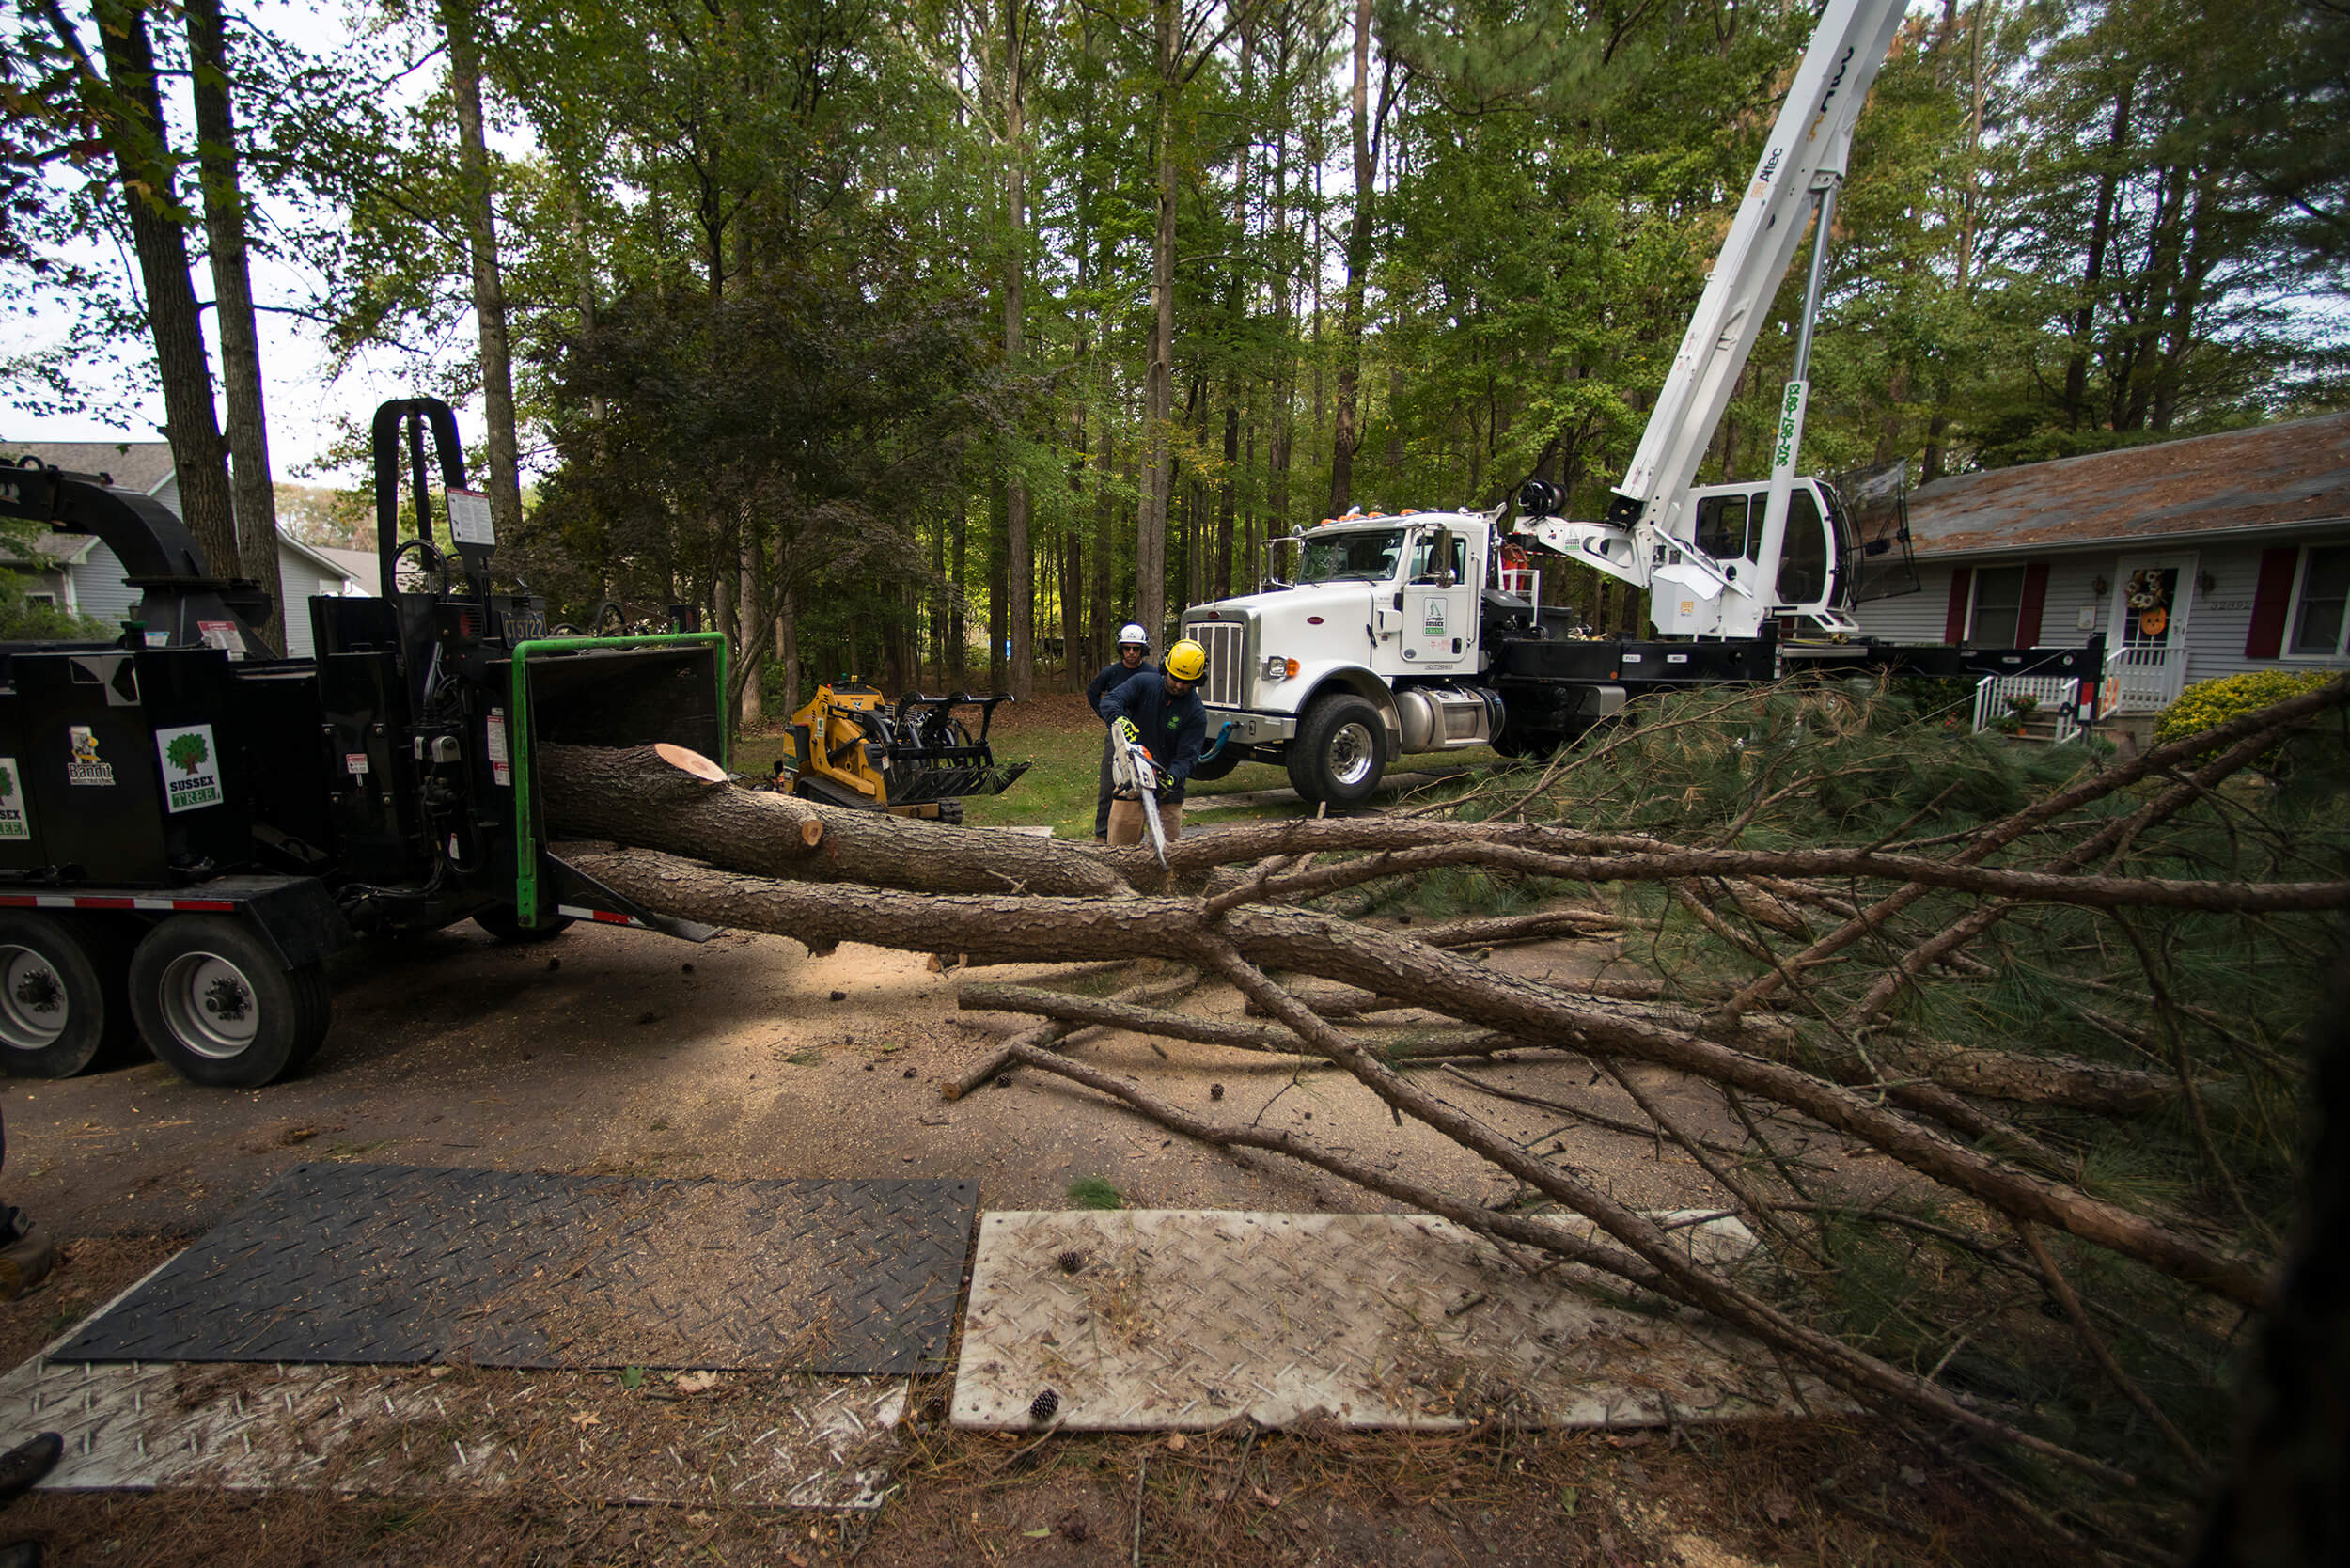 Sussex Crane Company chainsawing branches off downed tree